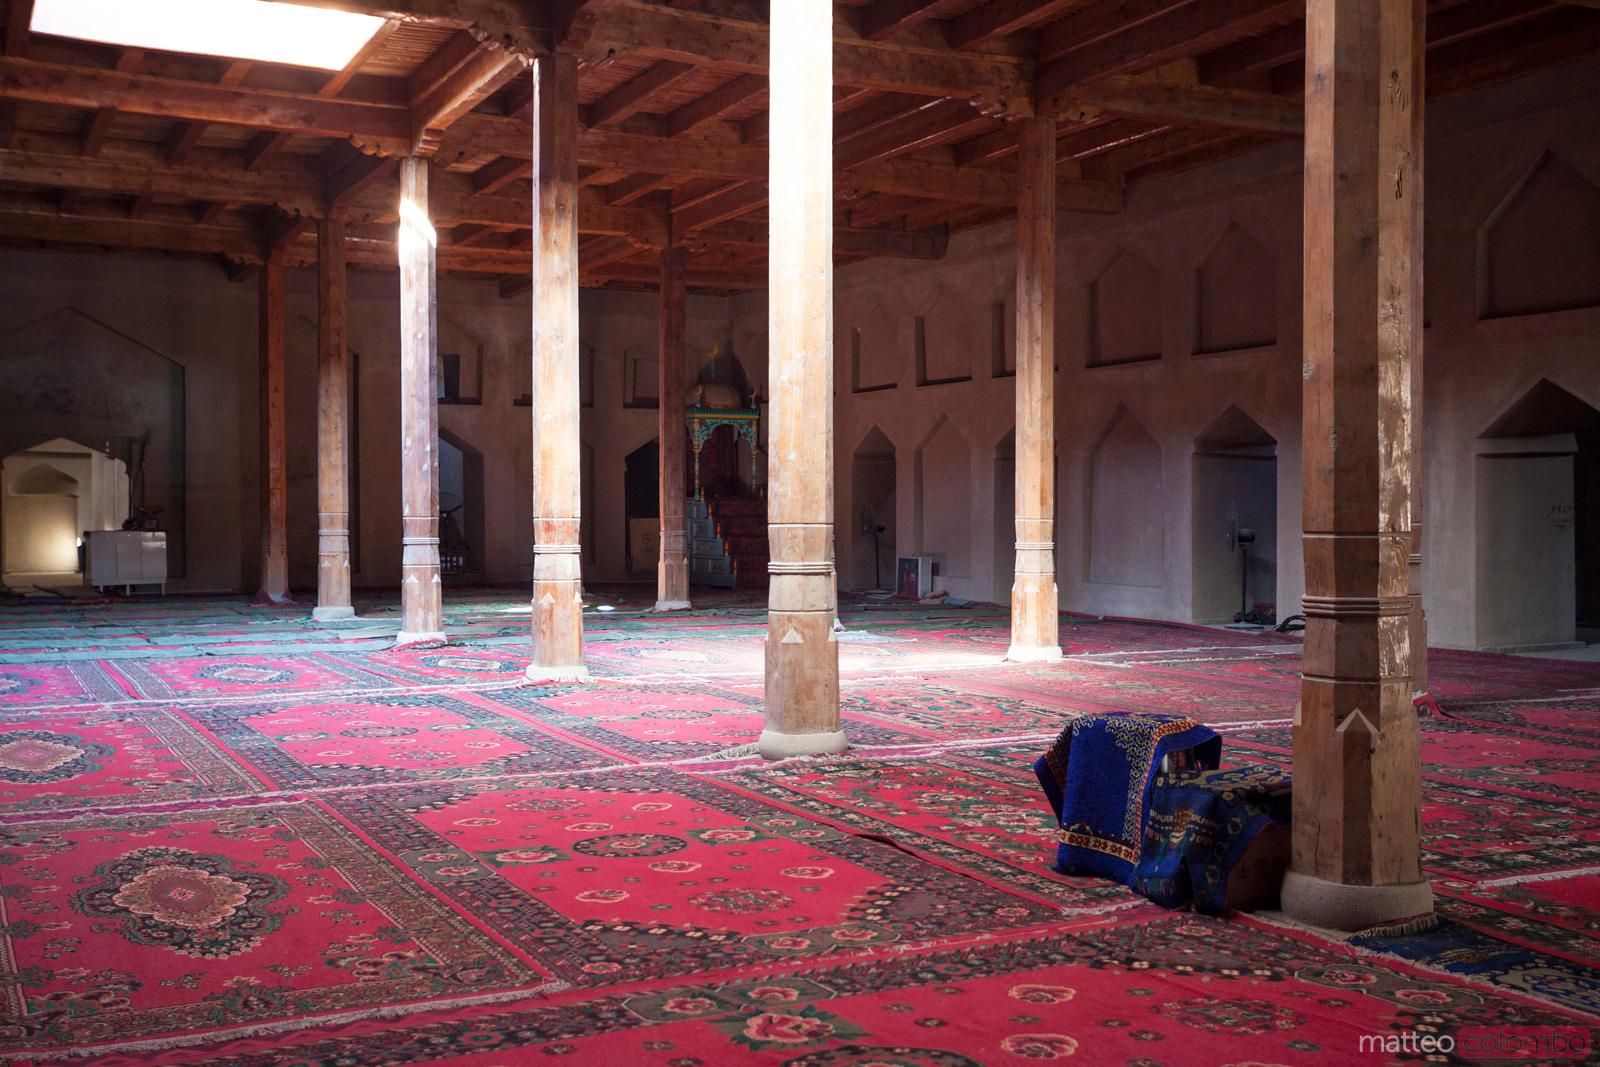 Inside islamic mosque, Xinjiang, China